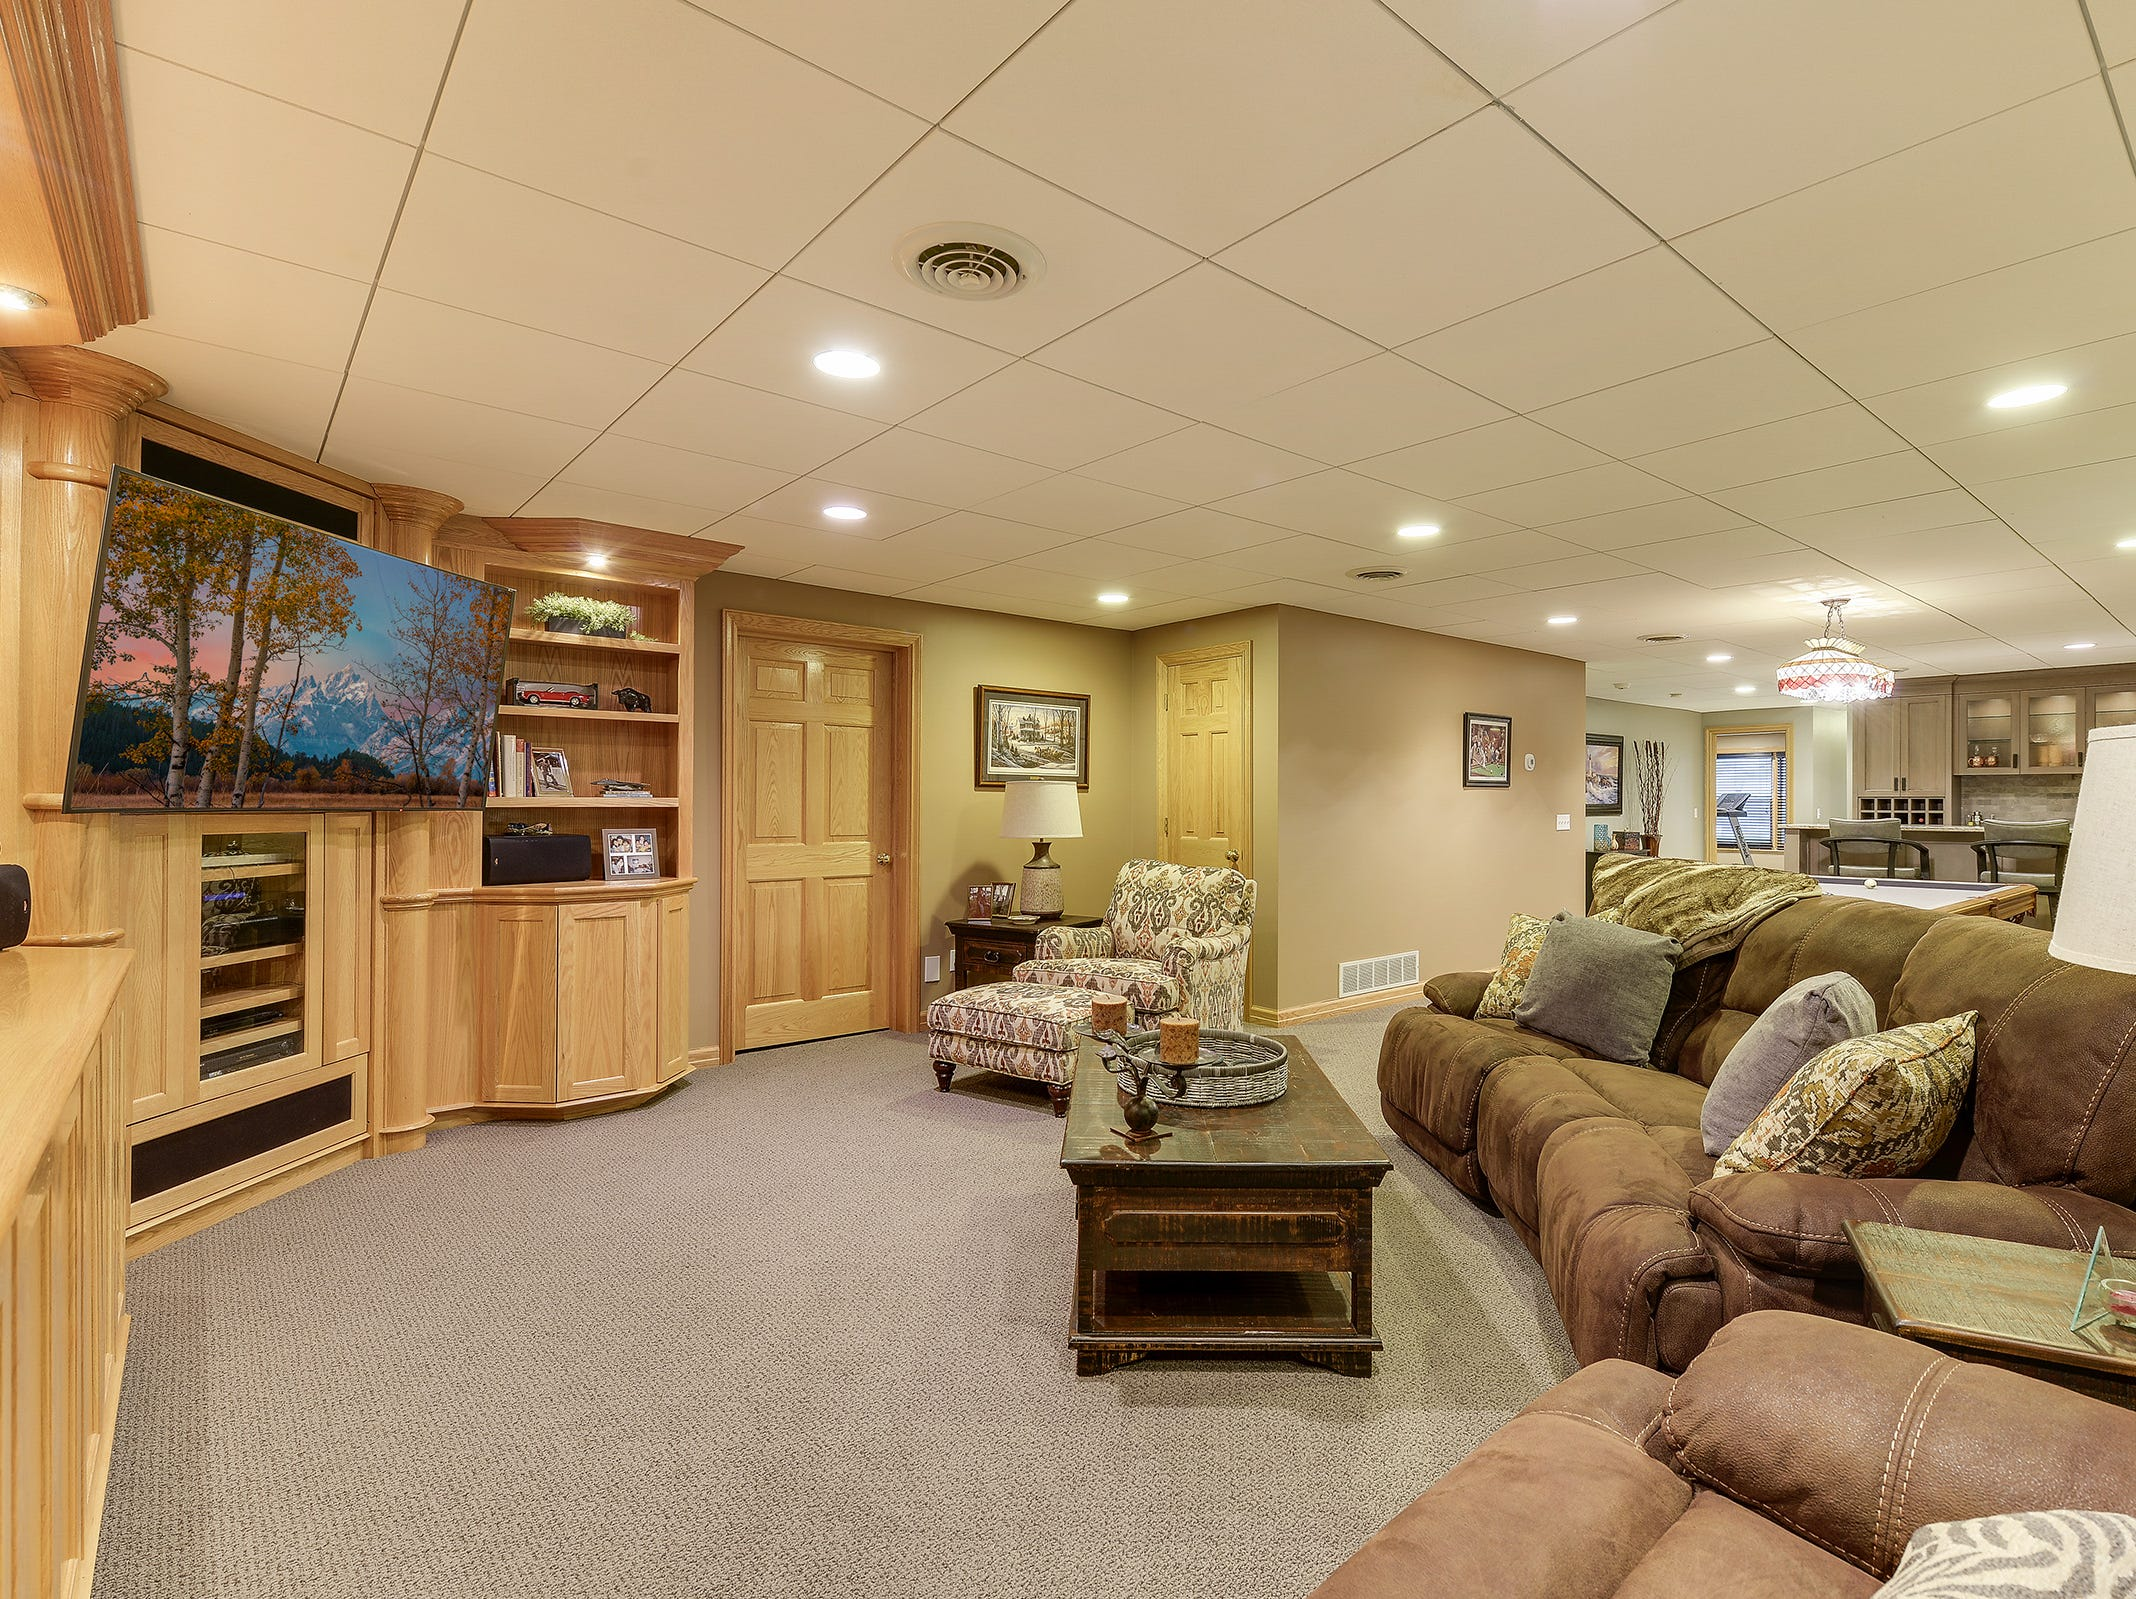 The lower level features a large family room with plenty of built-in bookshelves and storage.